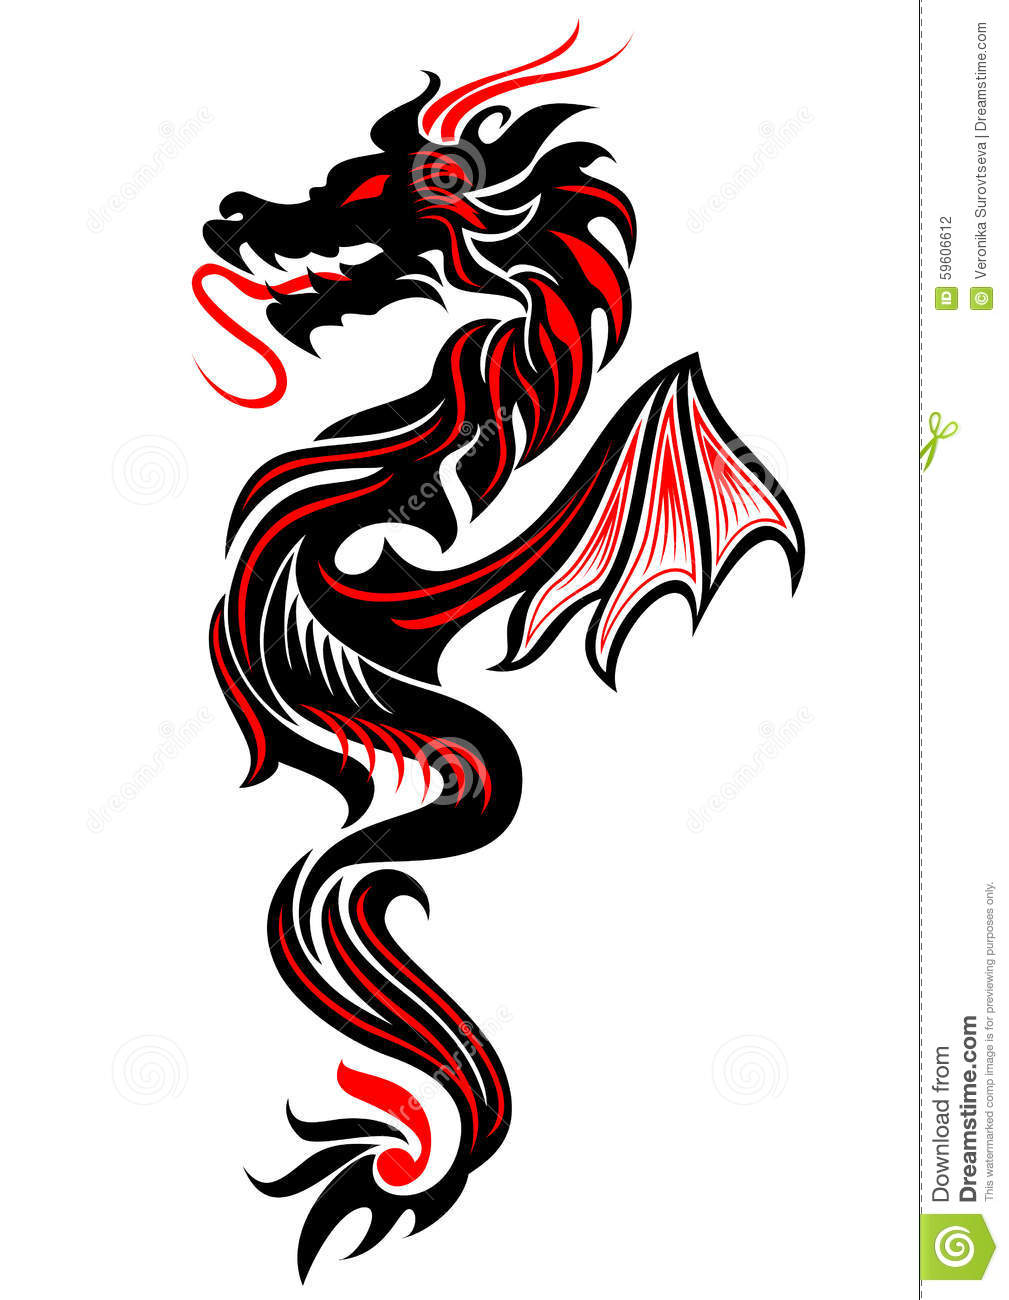 10+ Colored Tribal Dragon Tattoo